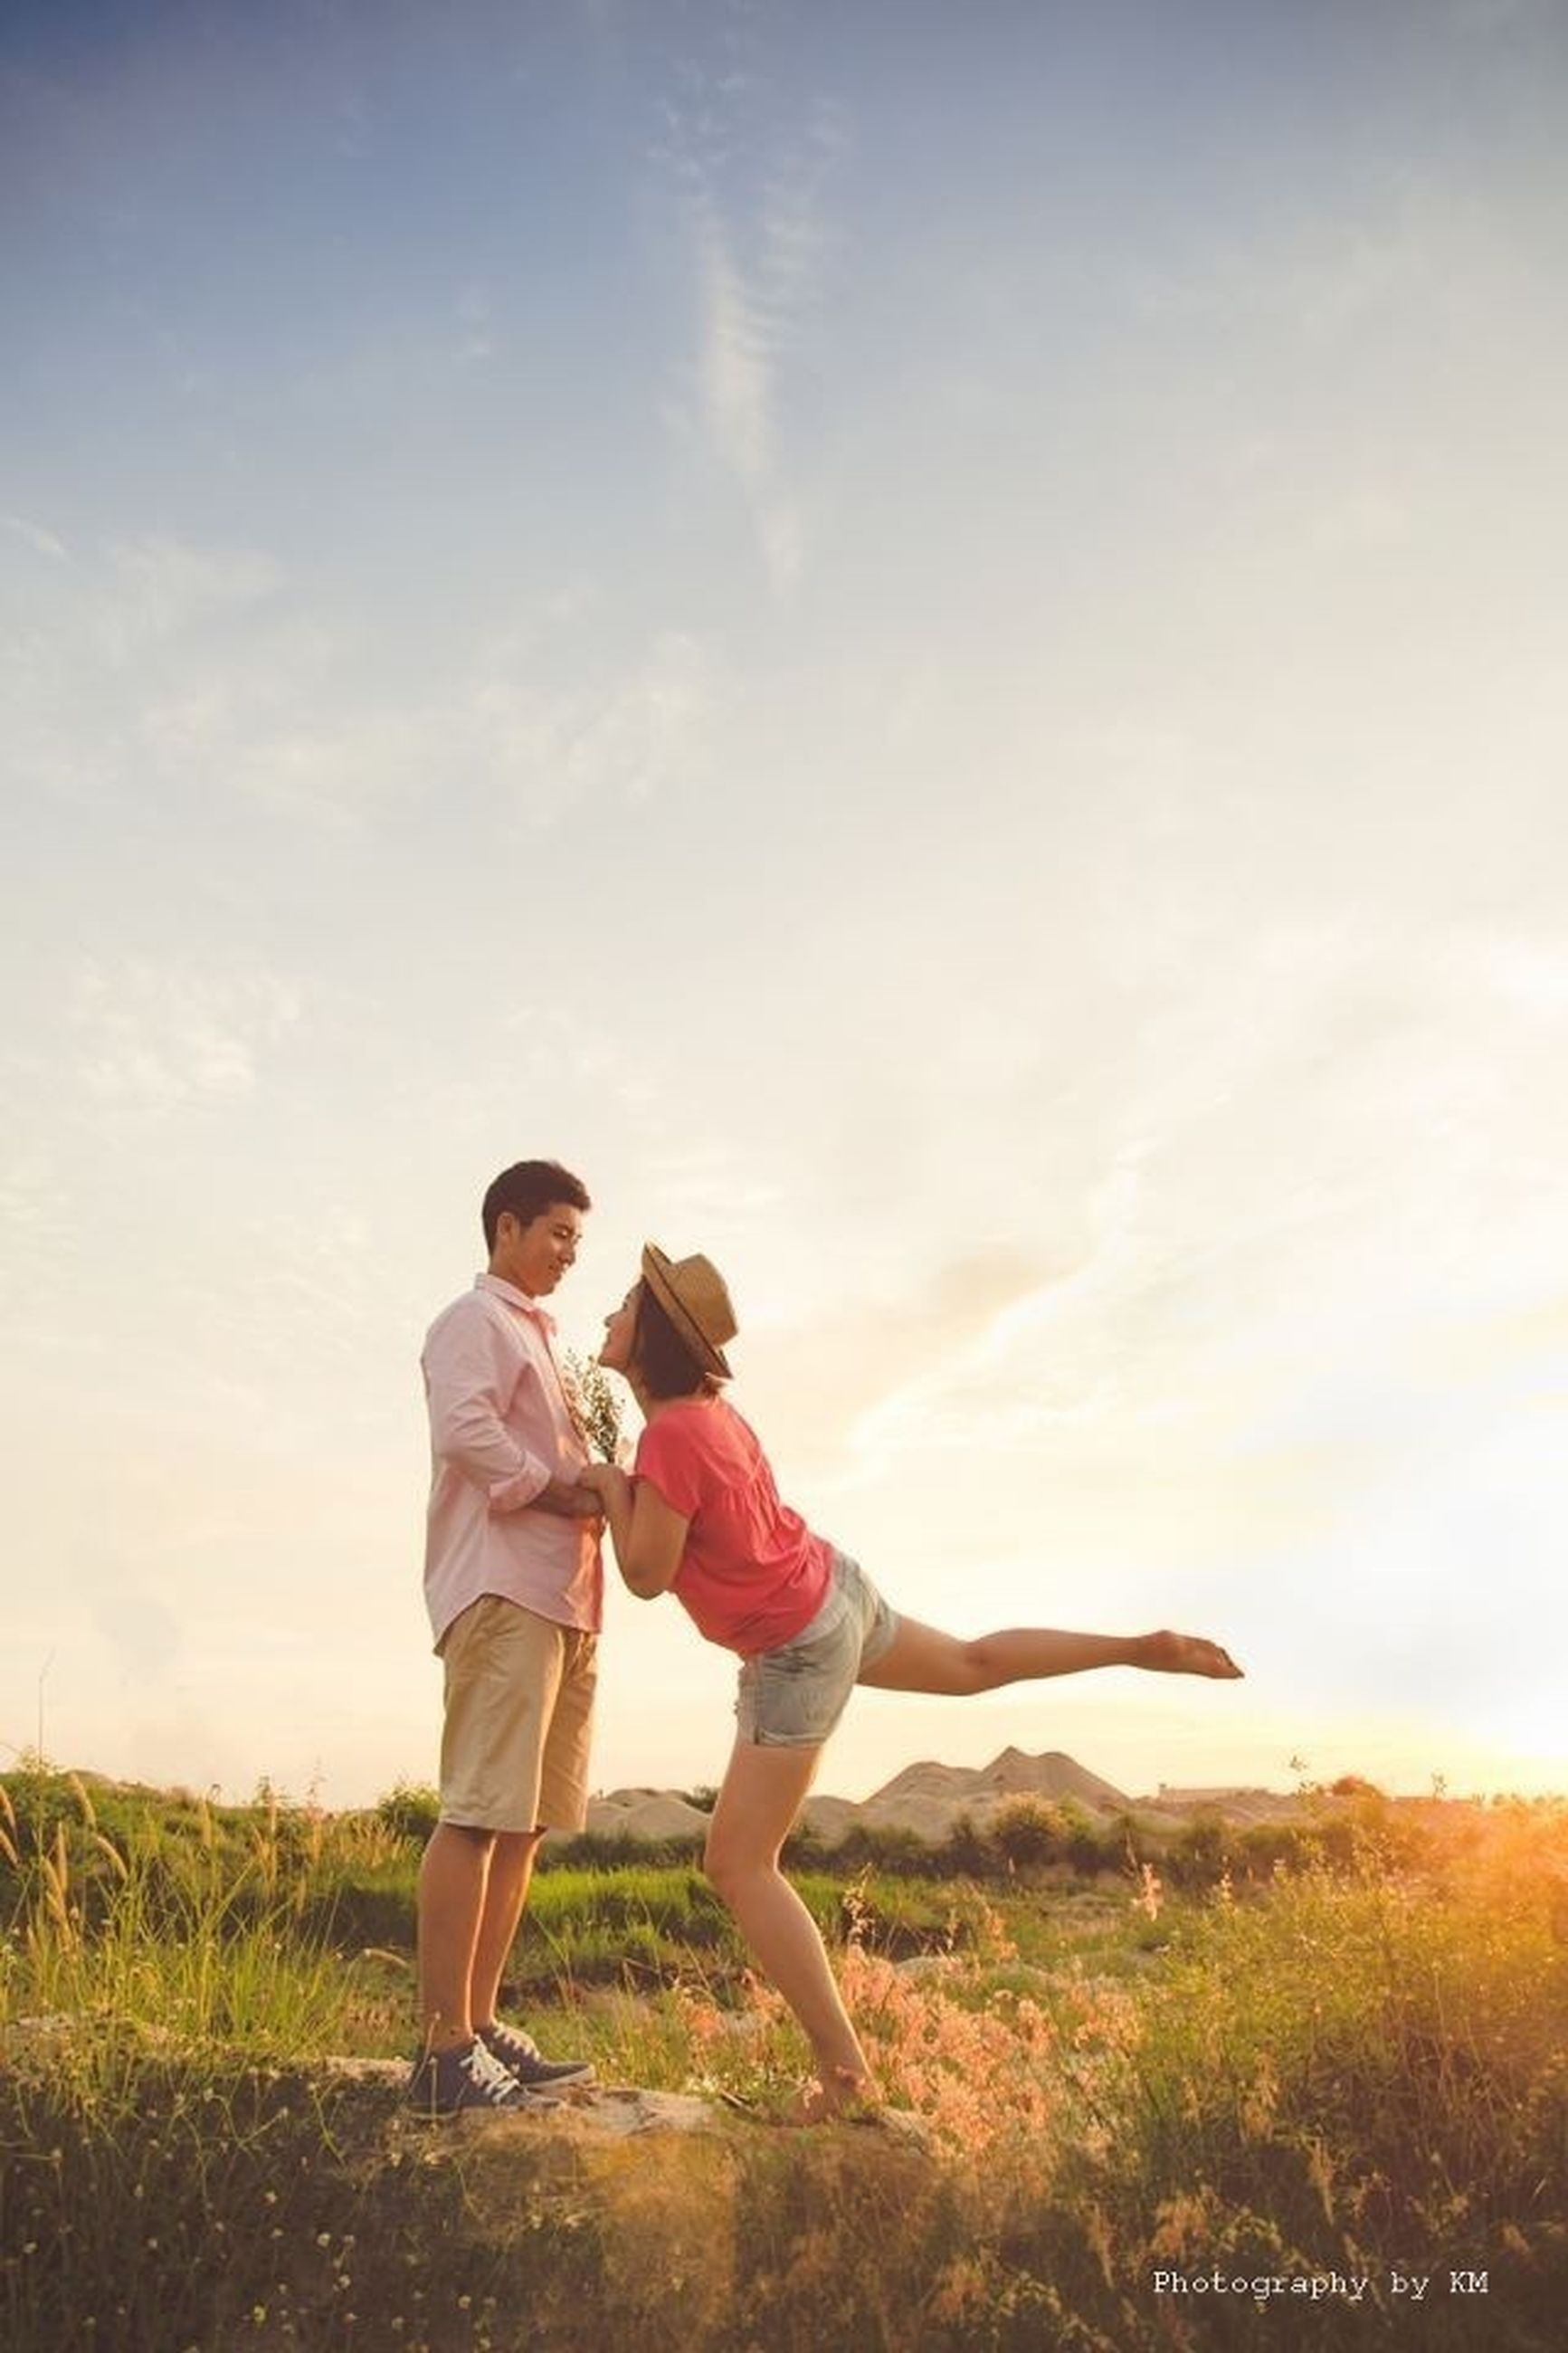 lifestyles, full length, leisure activity, childhood, togetherness, casual clothing, boys, sky, bonding, love, girls, field, elementary age, grass, rear view, standing, family